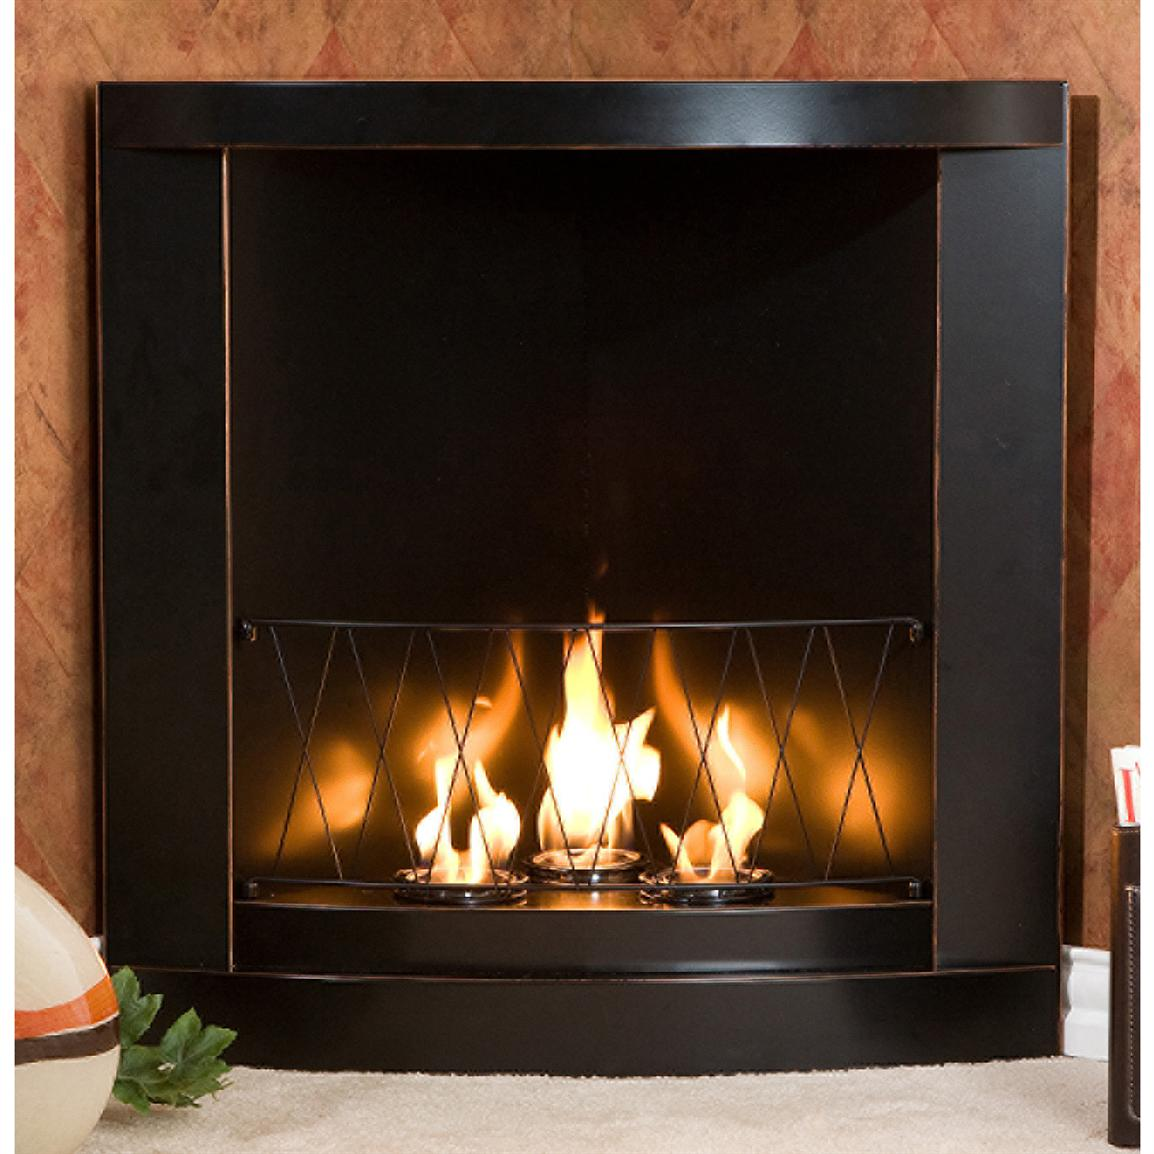 Southern Enterprises Inc Gel Fuel Corner Fireplace 176138 Fireplaces At Sportsman 39 S Guide